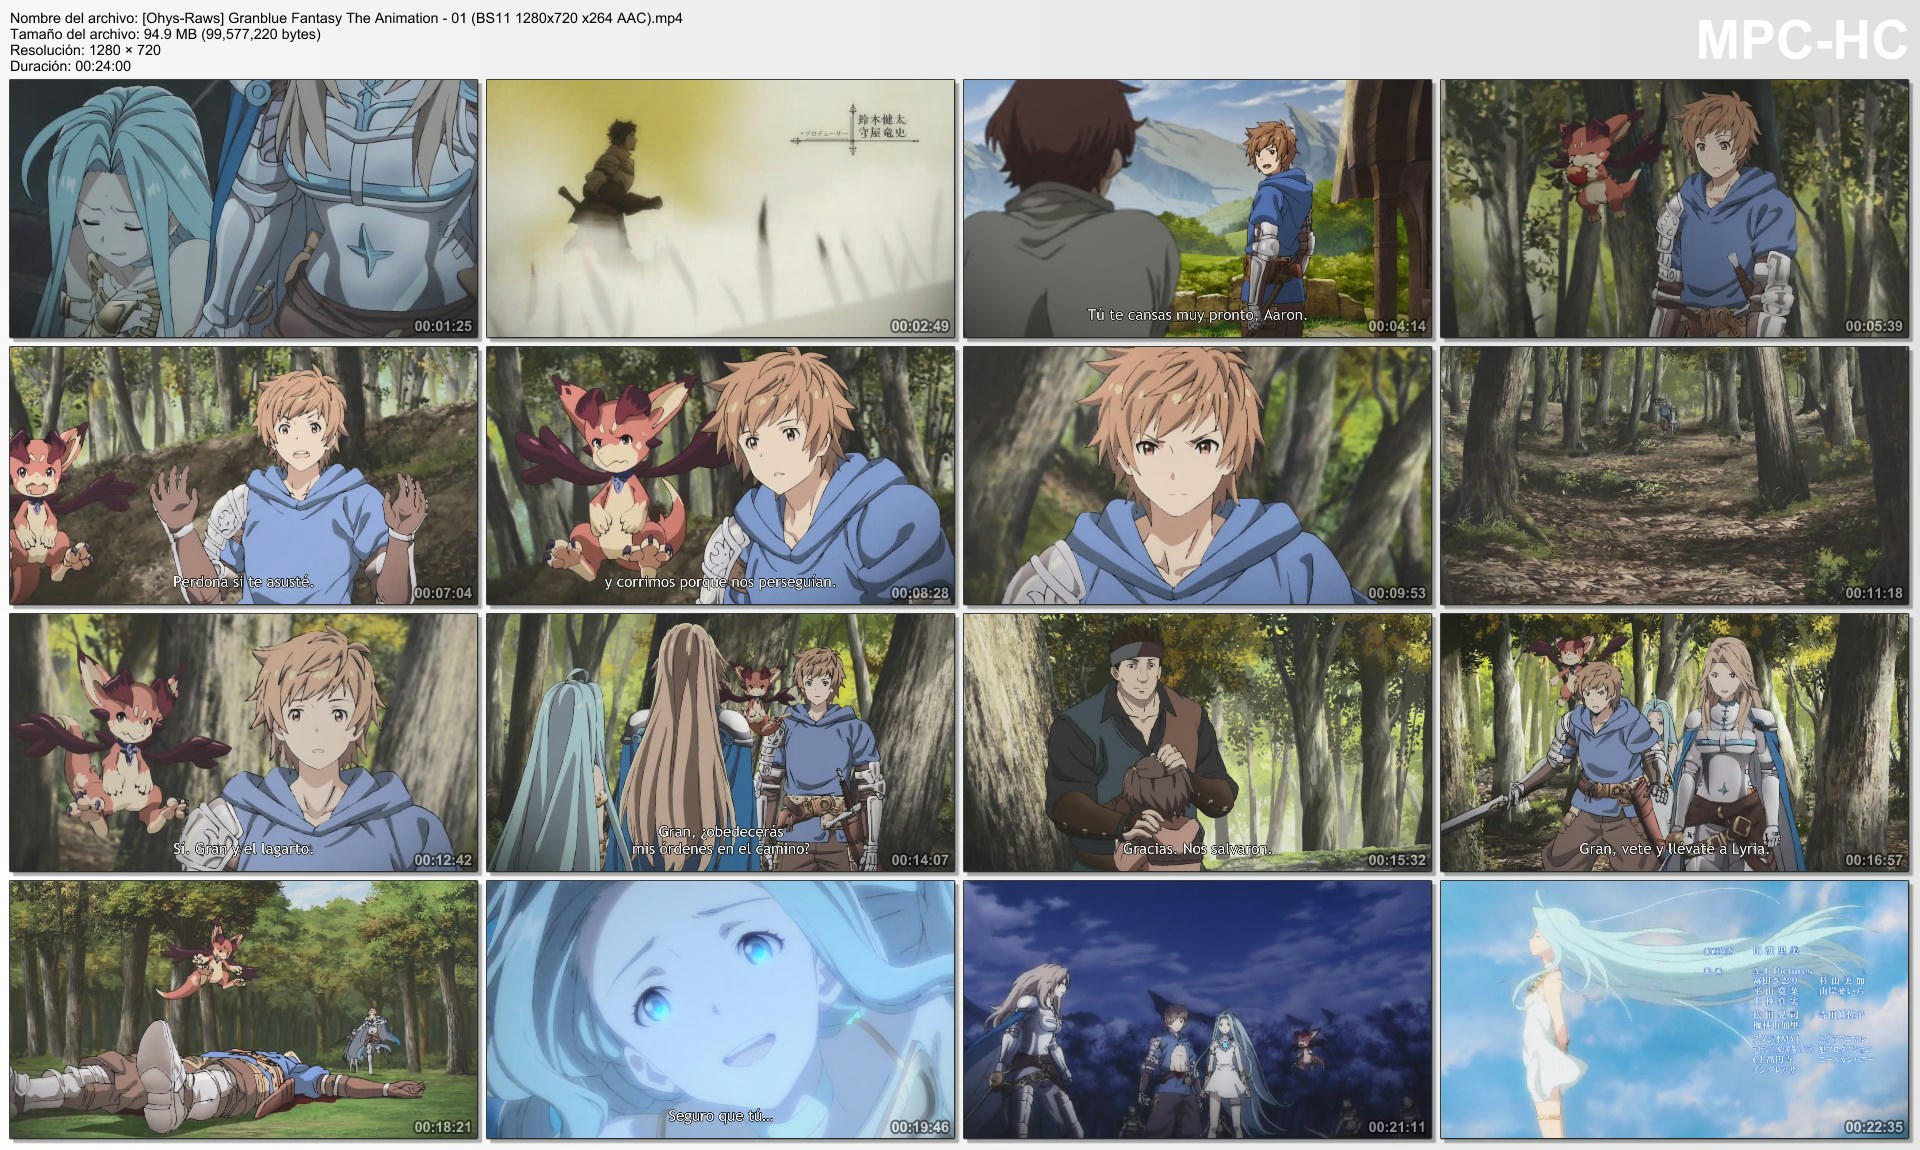 tm64vdblbfe85cyzg - Granblue Fantasy The Animation [T1: 13/13 Y T2: 05/14+Esp] [Ligero] (Emisión) - Anime Ligero [Descargas]